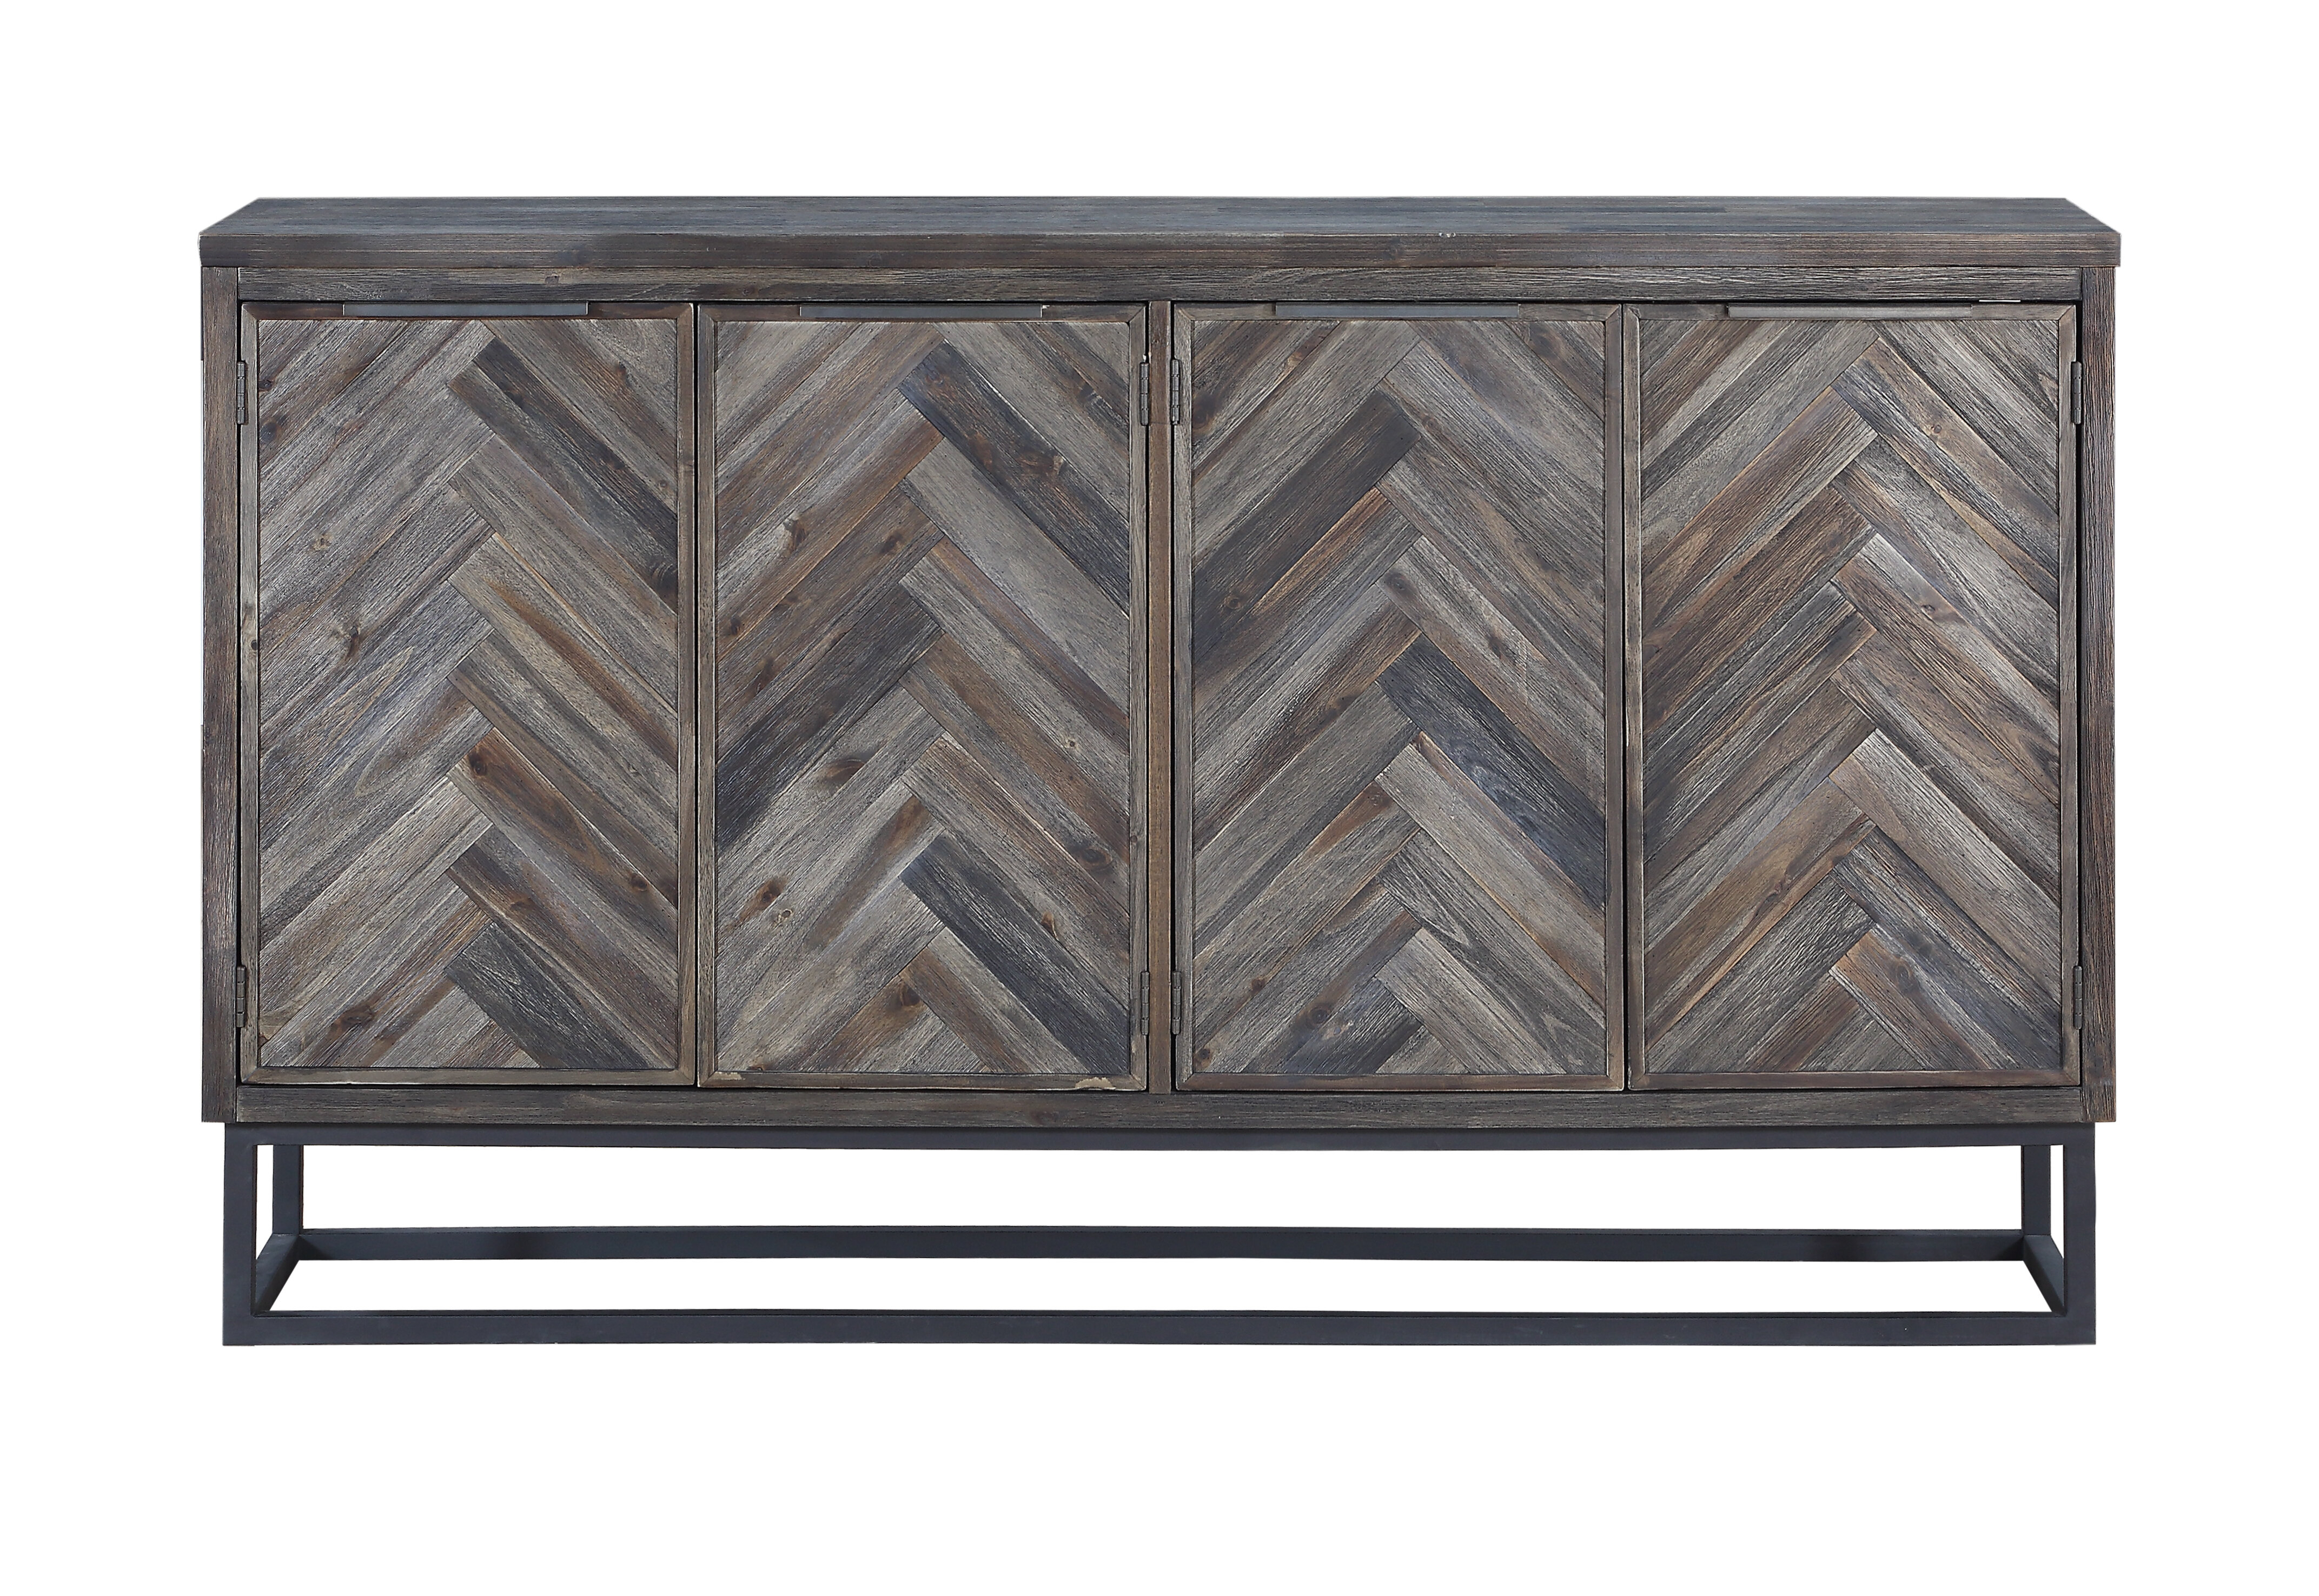 Modern Metal Sideboards + Buffets | Allmodern Pertaining To Contemporary Three Tier Glass Buffets With Black Metal Frame (View 19 of 30)